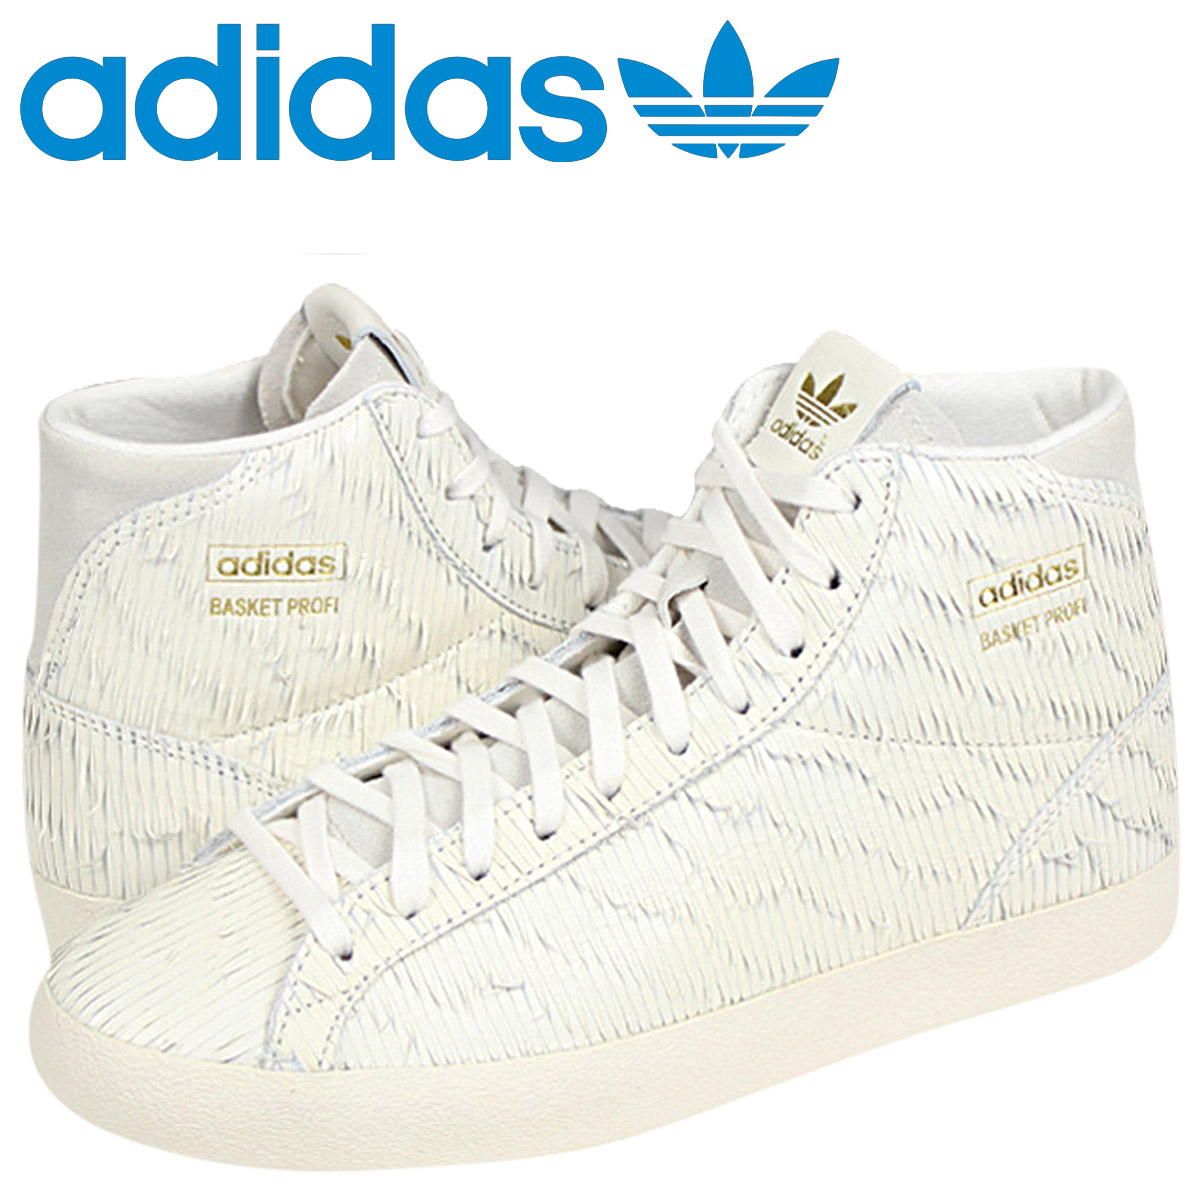 8c16fd2d Adidas originals adidas Originals Women's BASKET PROFI EAGLE W sneakers  バスケットプロフィ Eagle leather men white D65896 [5 / 2 new in ...